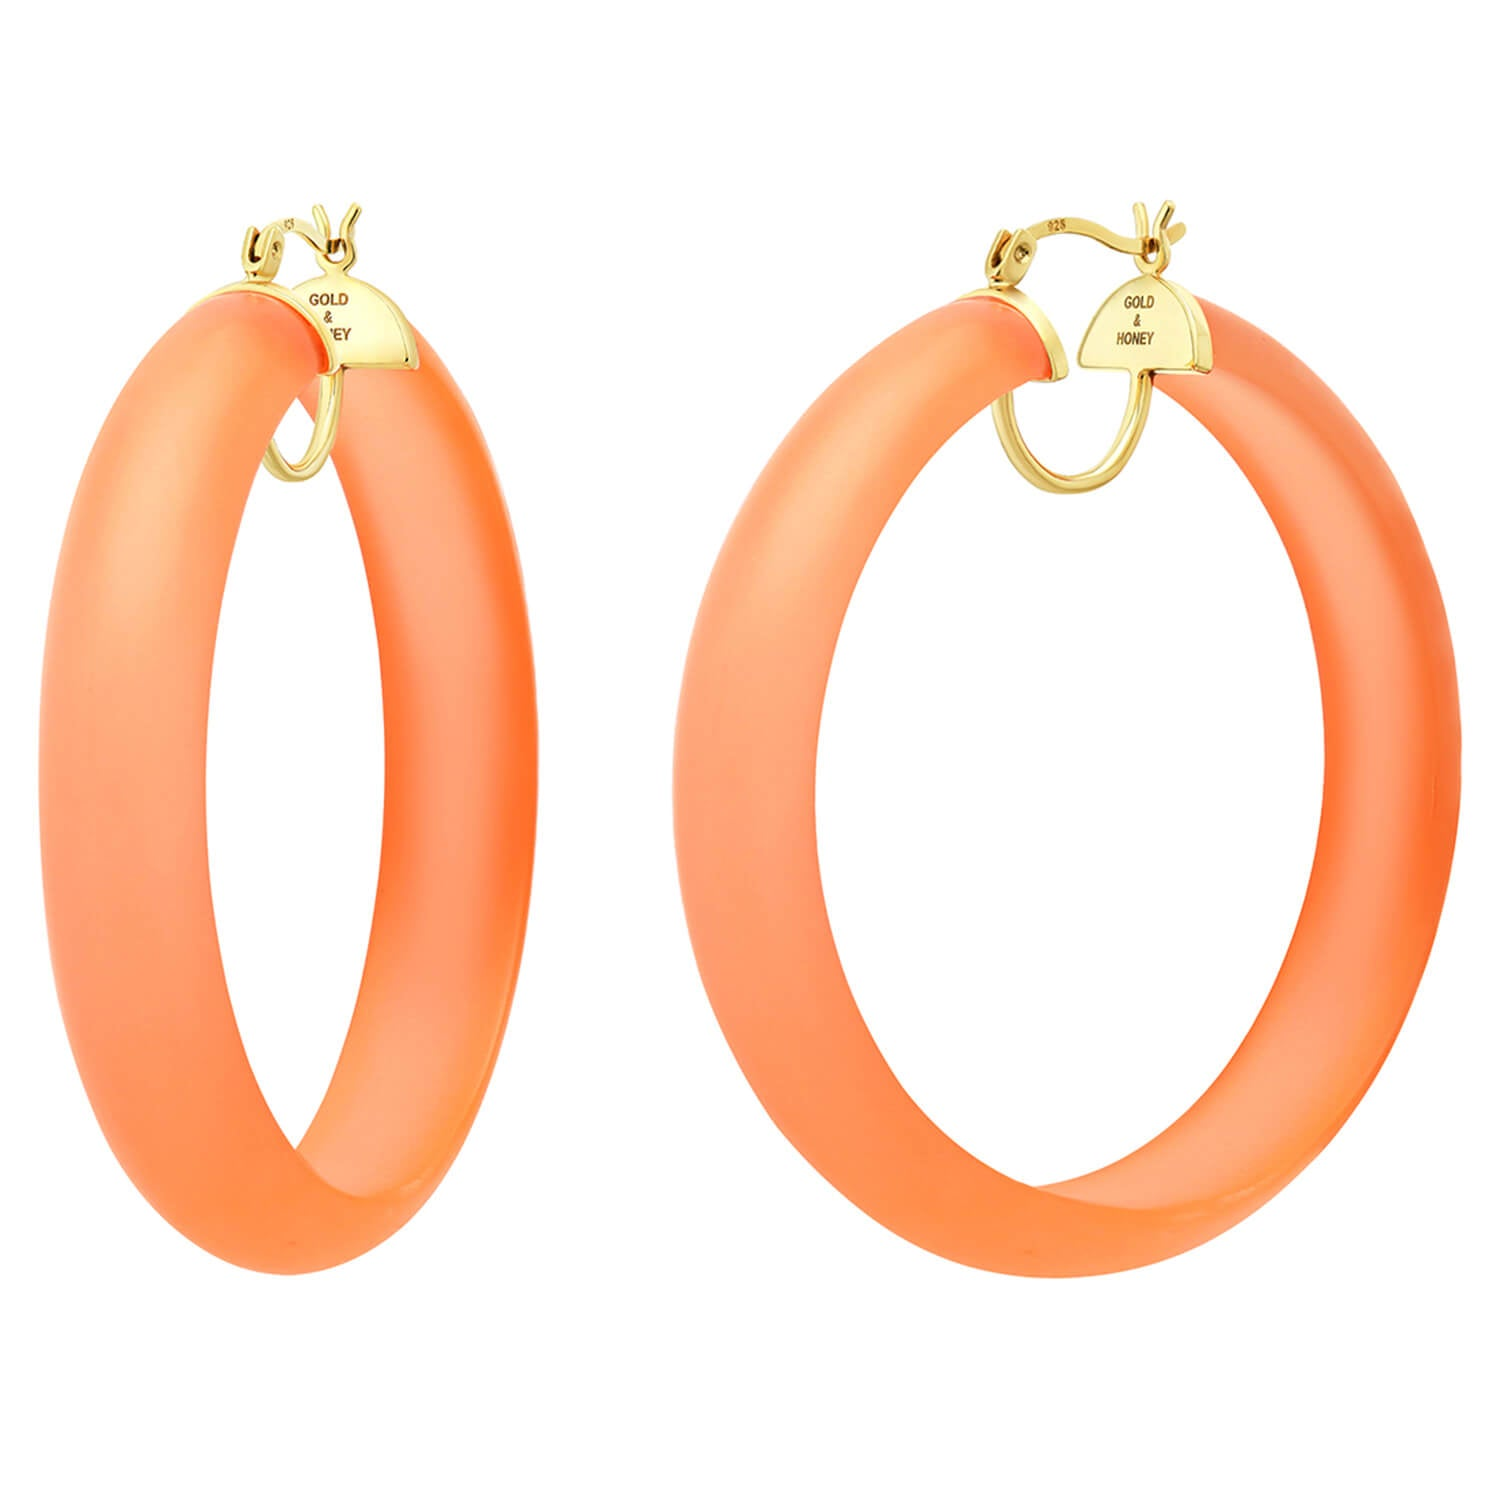 Frosted Lucite Hoops in Orange